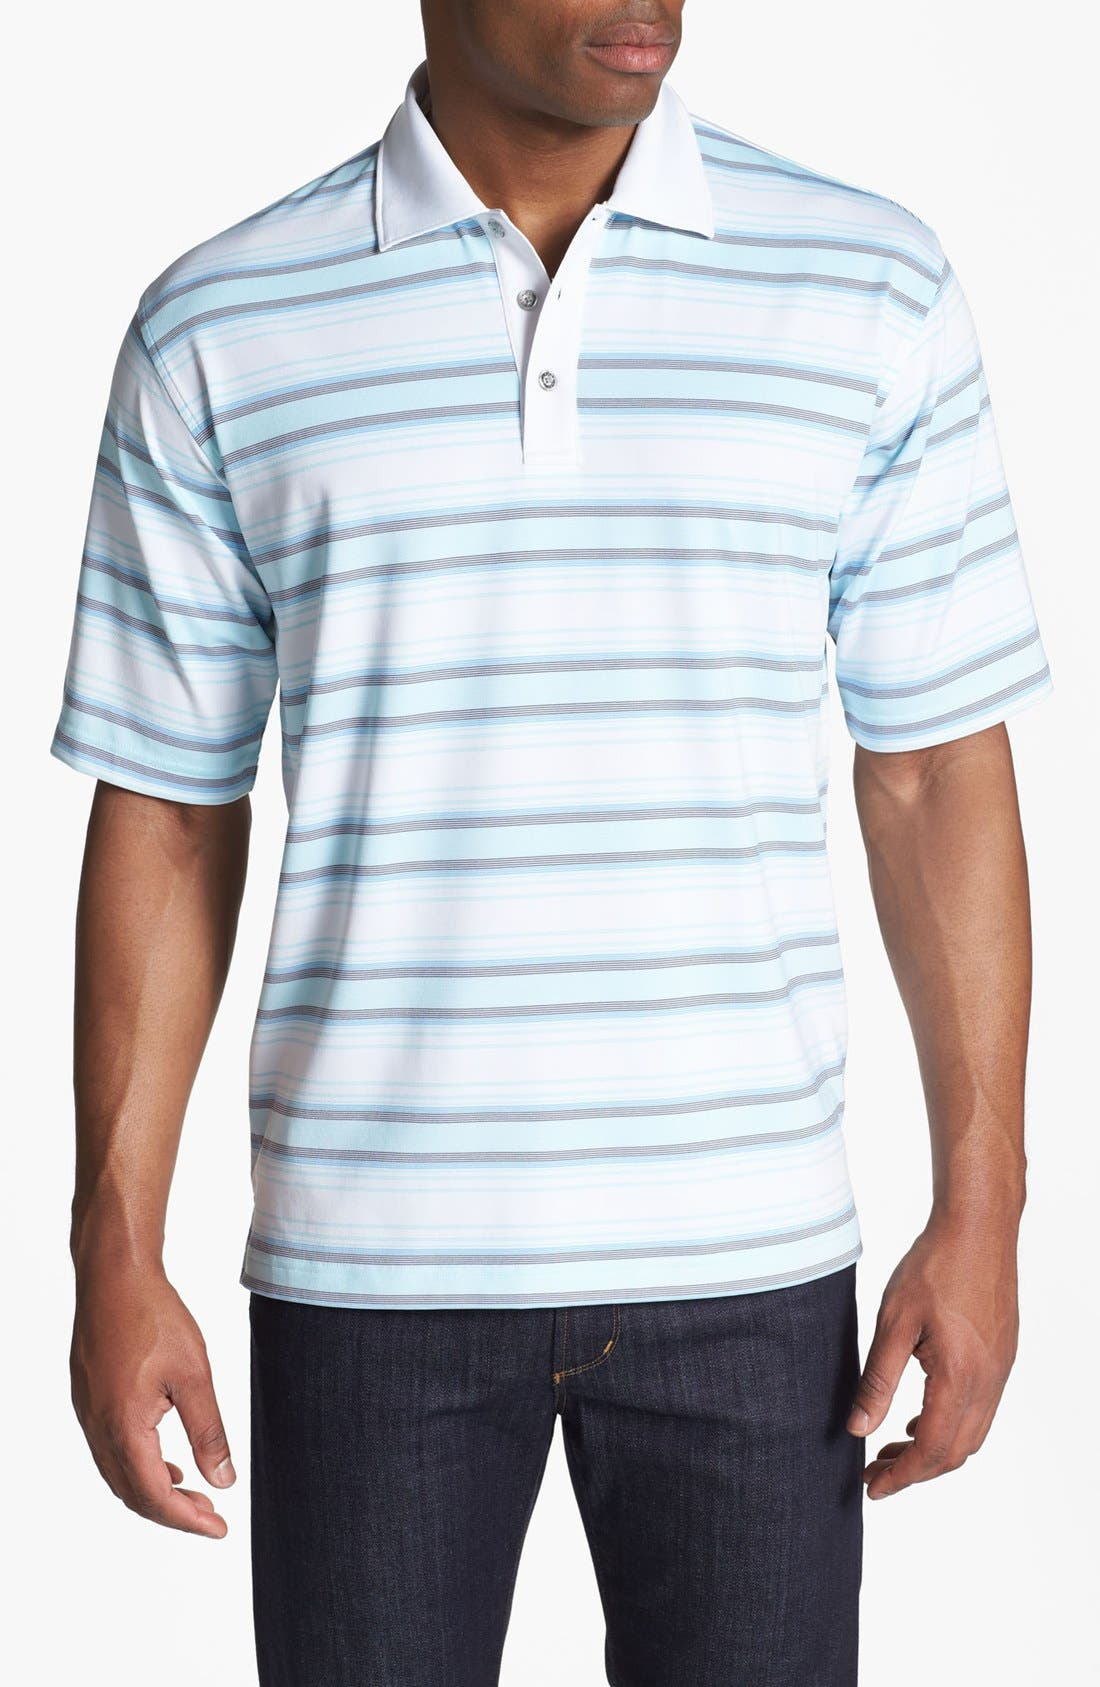 Alternate Image 1 Selected - Lone Cypress Pebble Beach Striped Polo Shirt